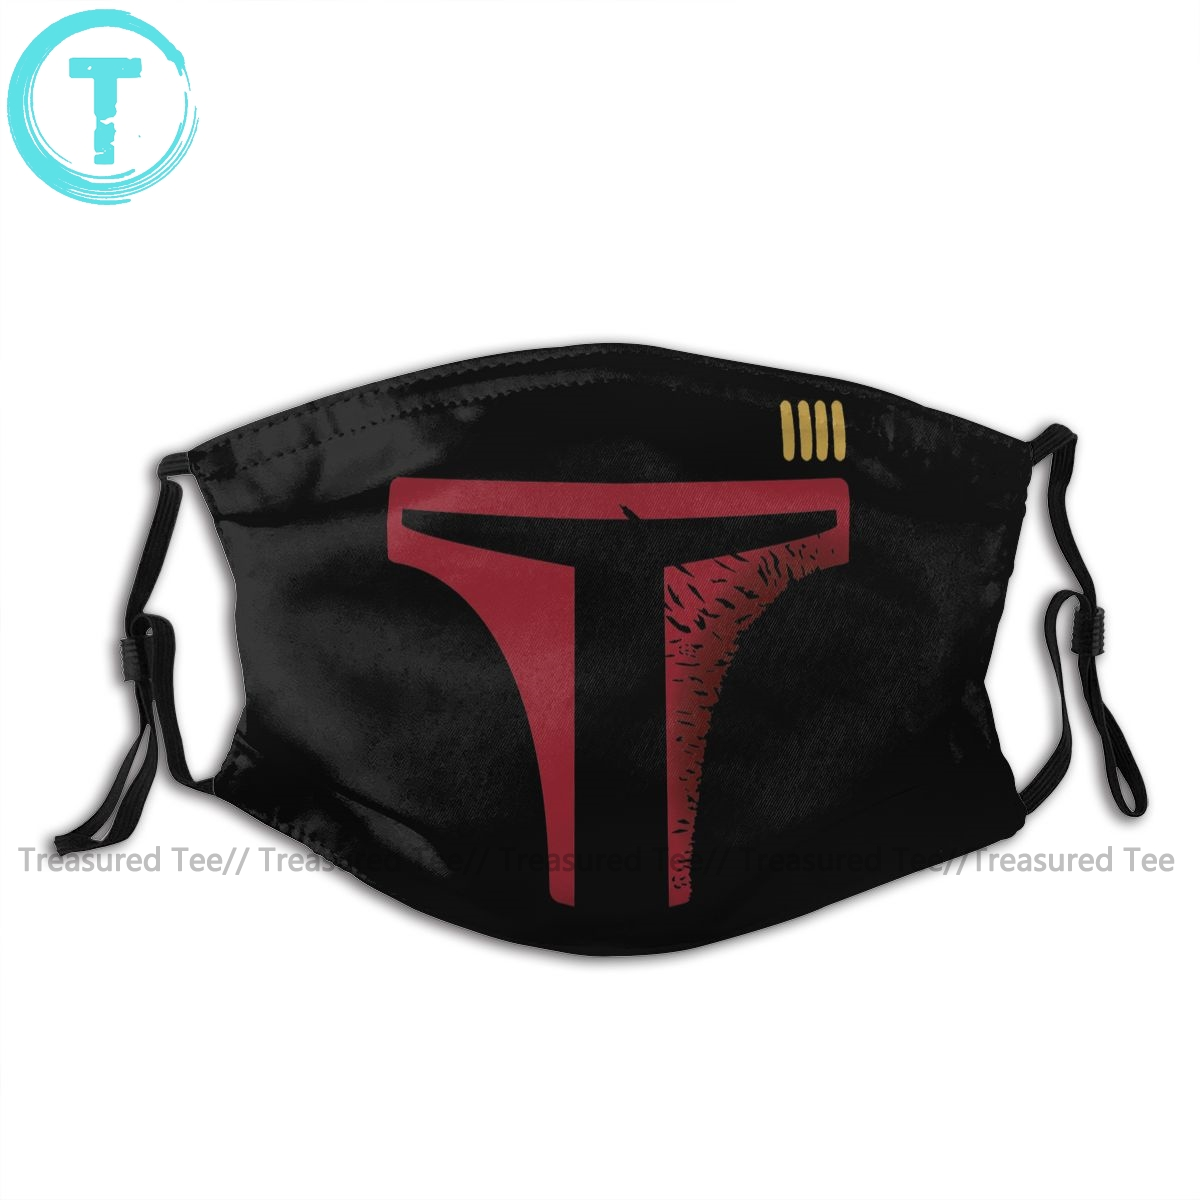 Boba Fett Mouth Face Mask Star Wars Destroyed Boba Fett Facial Mask Cool Fashion With 2 Filters For Adult